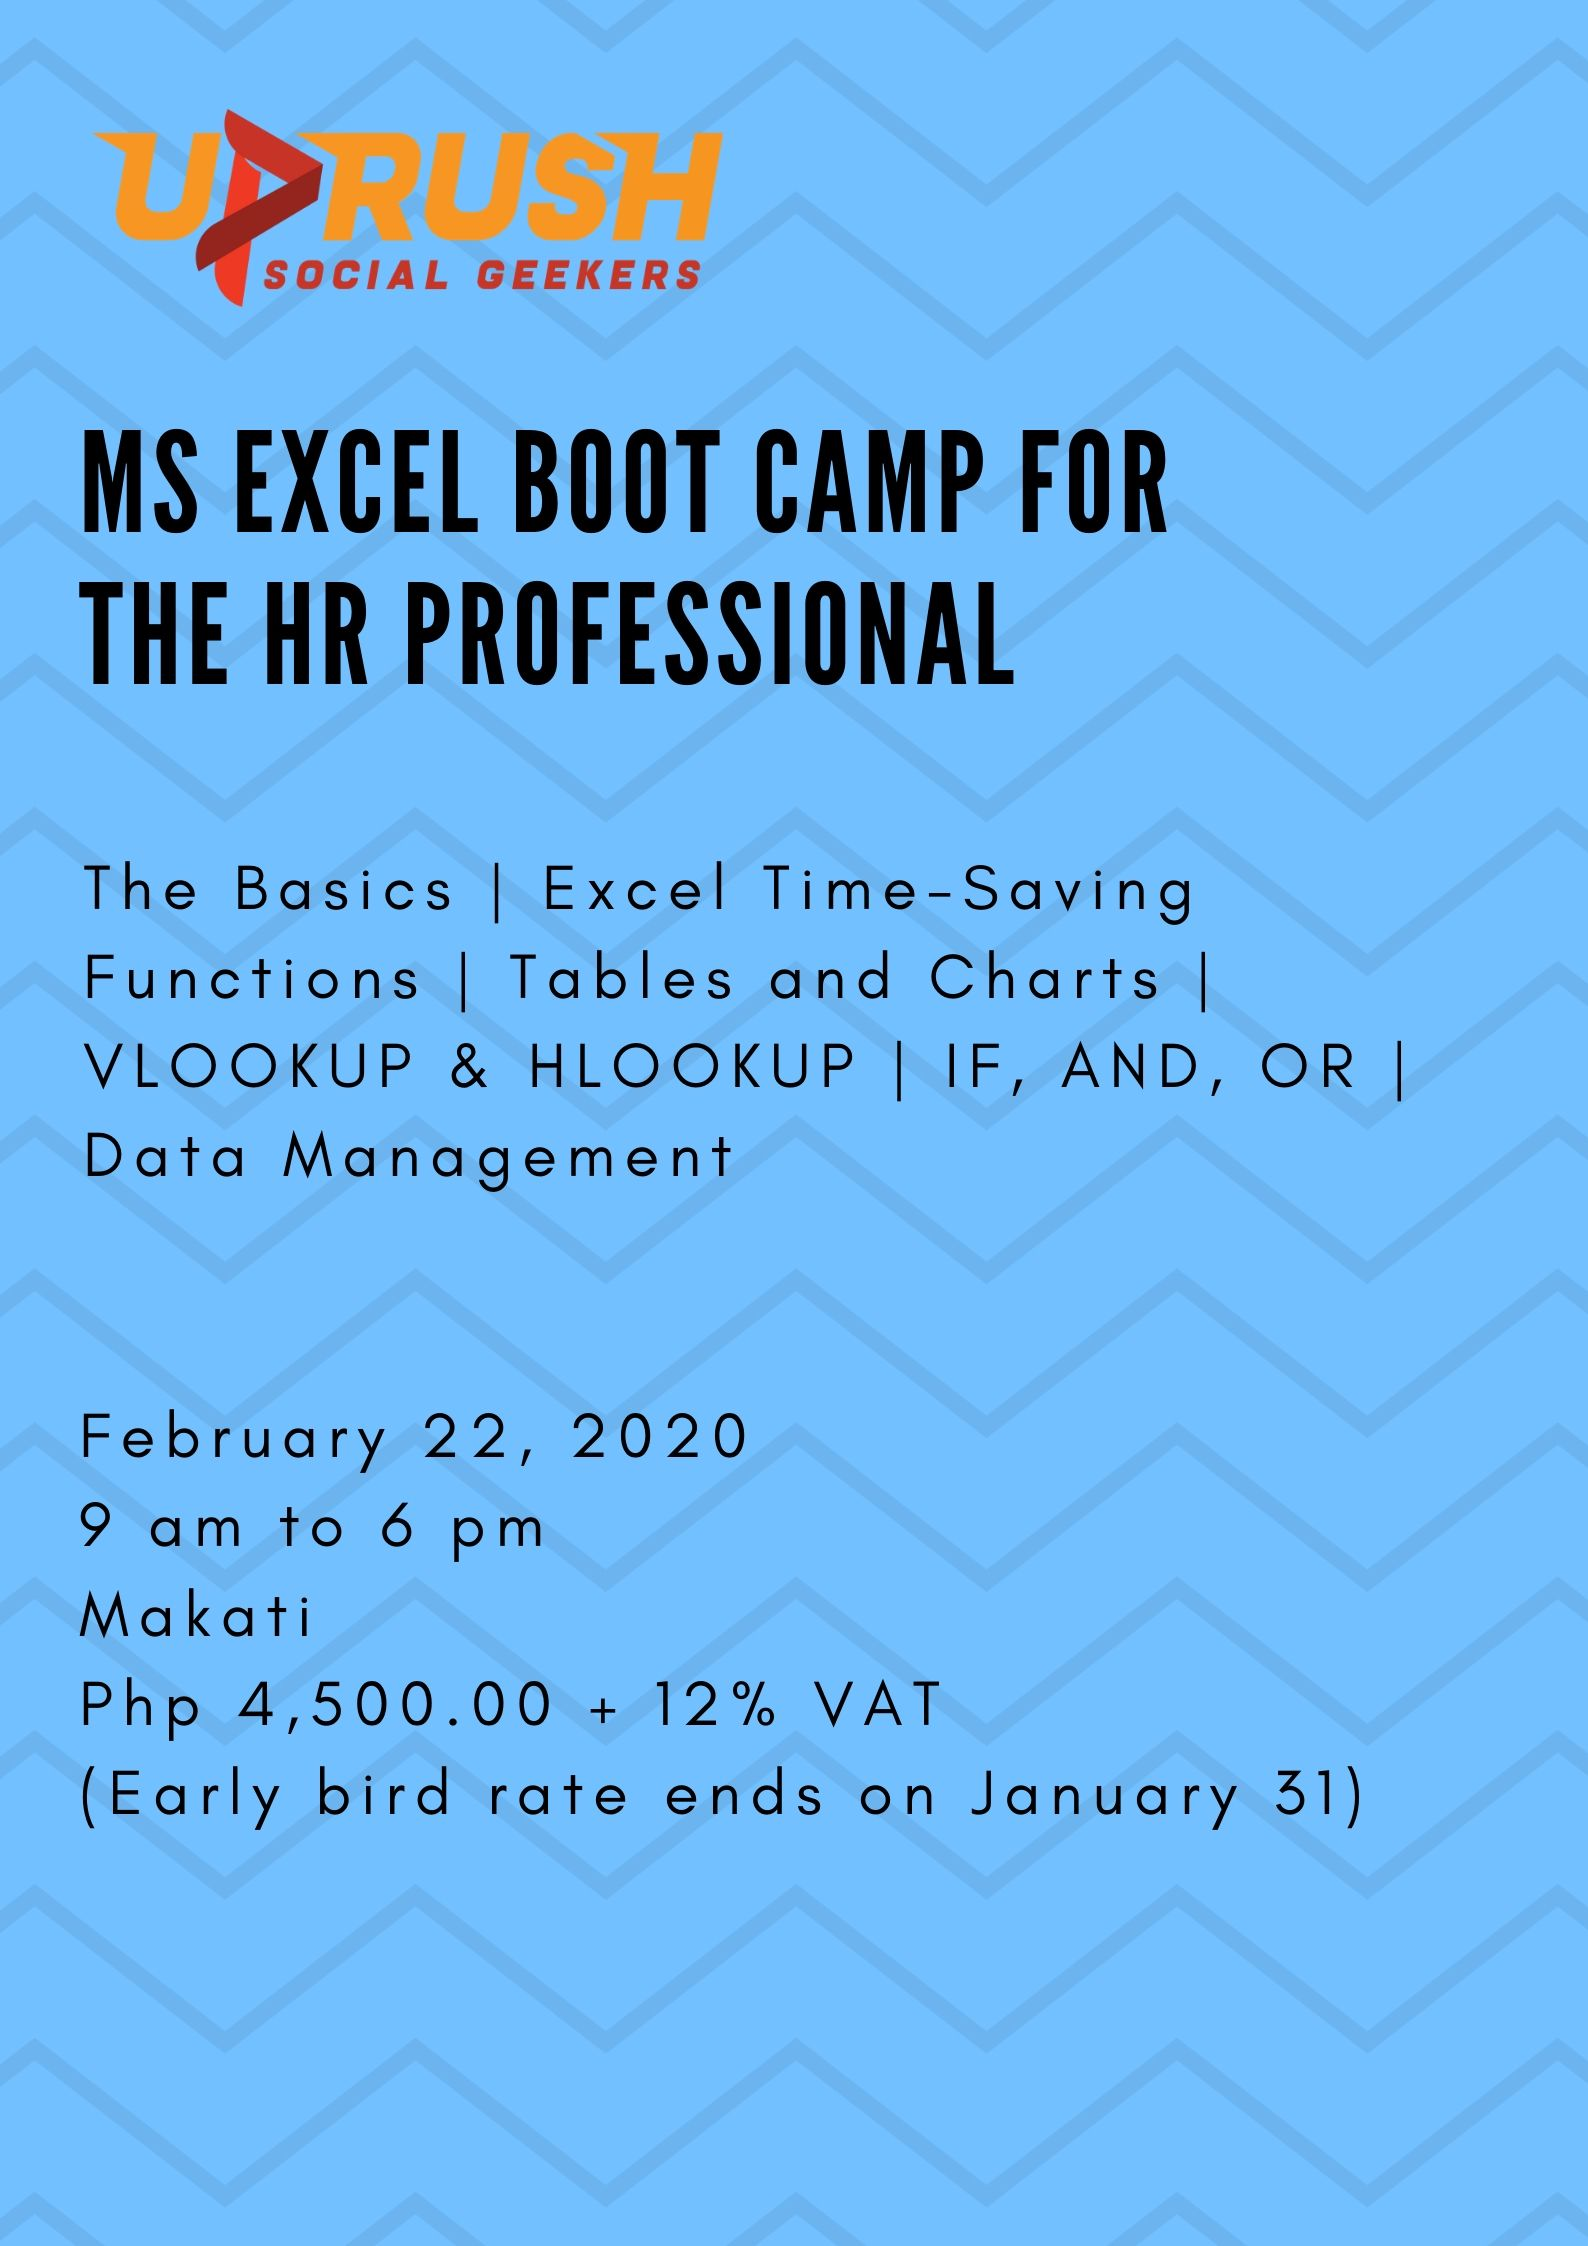 MS Excel Boot Camp